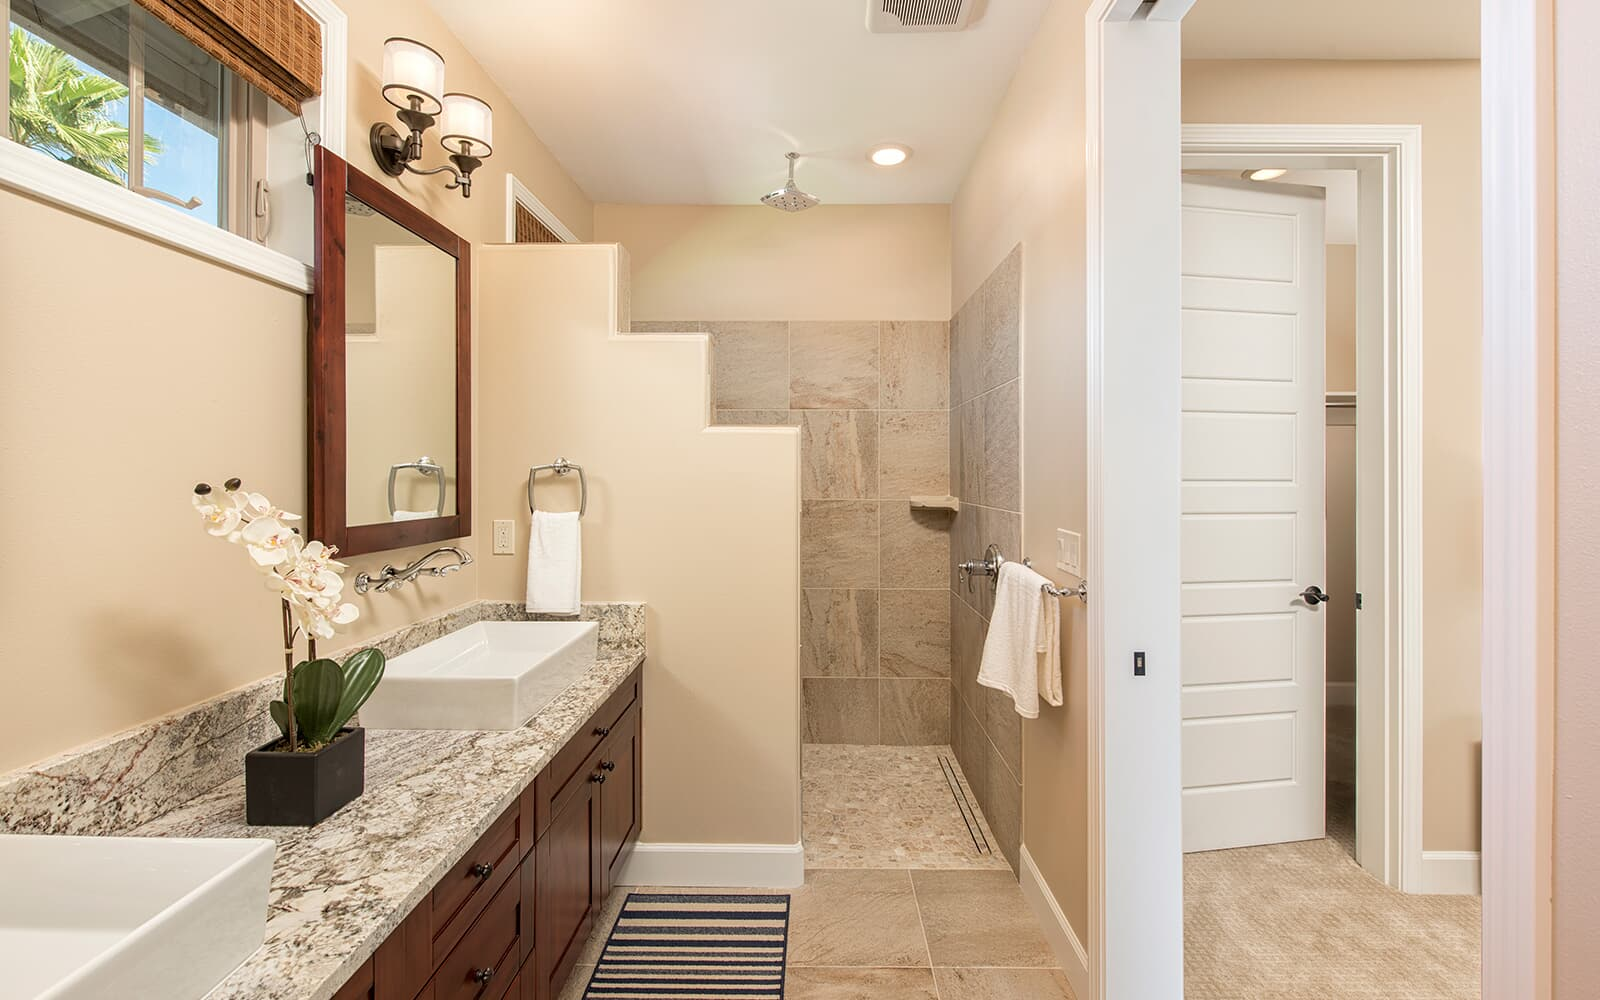 bath-2-walk-in-shower-plan-3-holua-kai-at-keauhou-big-island-brookfield-residential